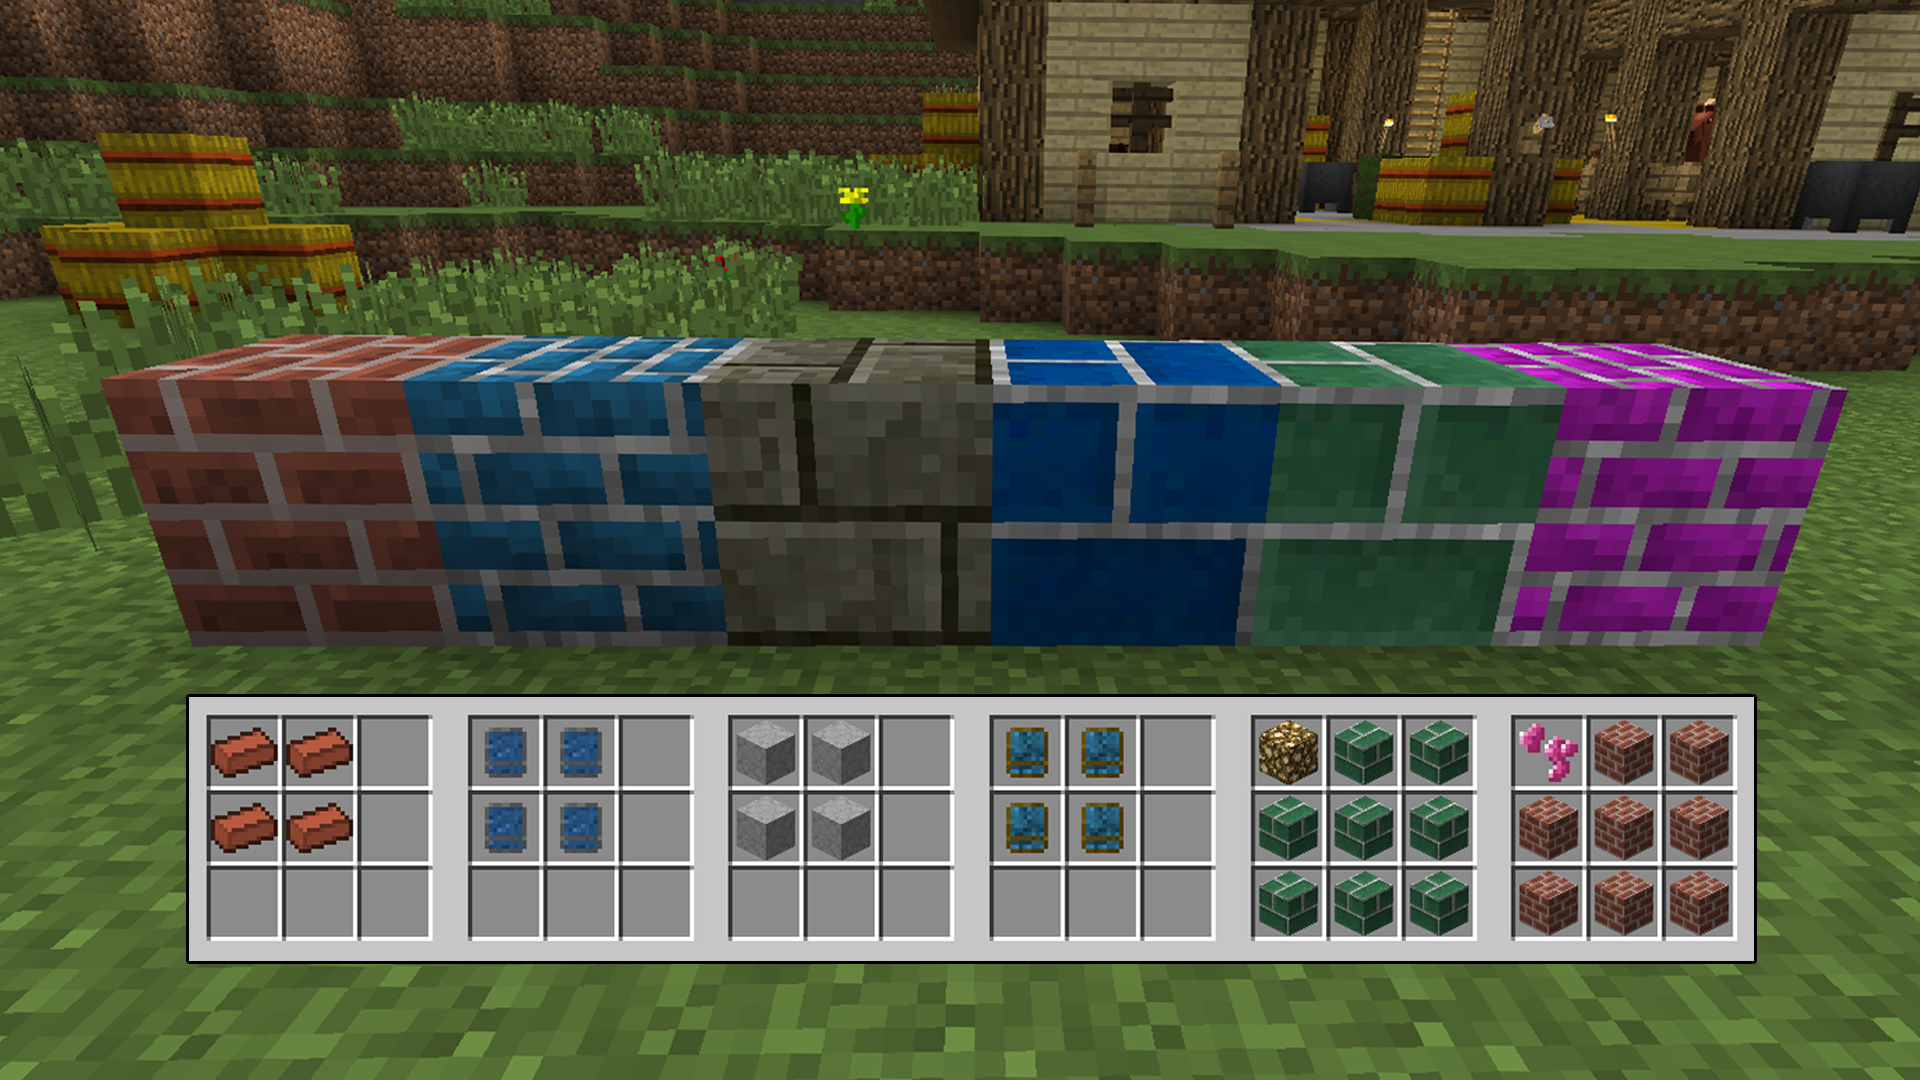 Gwycraft minecraft mods the mudbrick and standard brick blocks can also be combined with glowstone or an enchanted ore to be able to emit light sciox Image collections